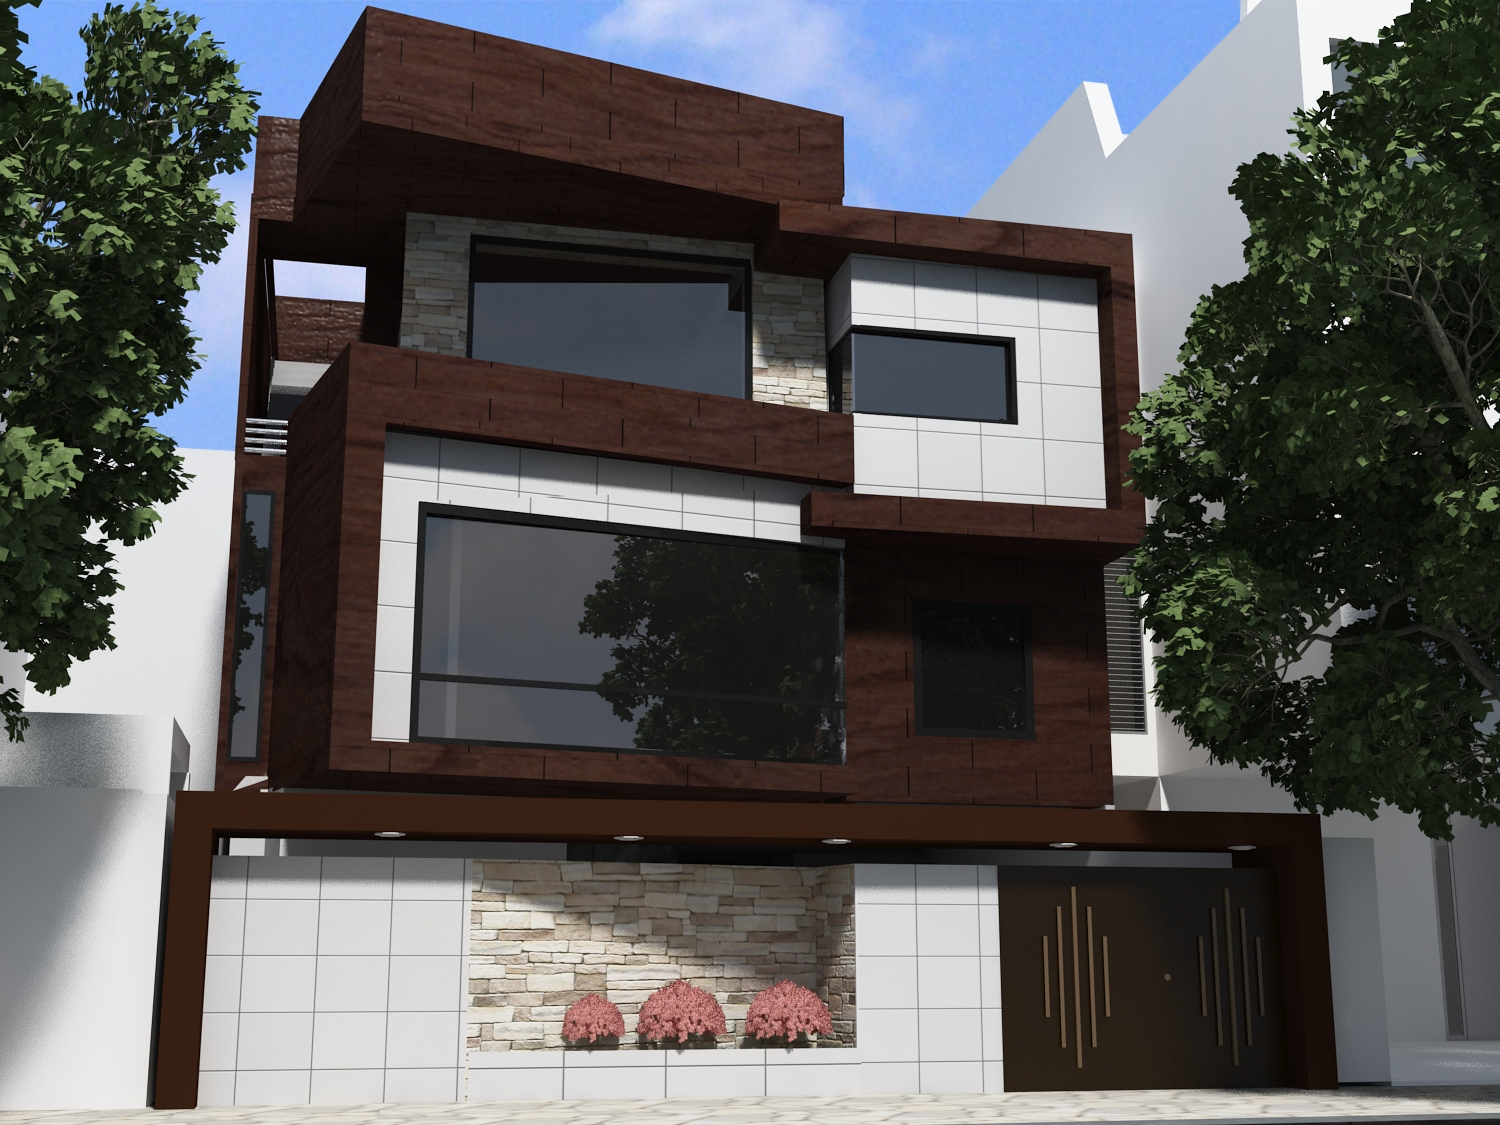 Fabulous Modern House Exterior Design 1500 x 1125 · 1041 kB · jpeg